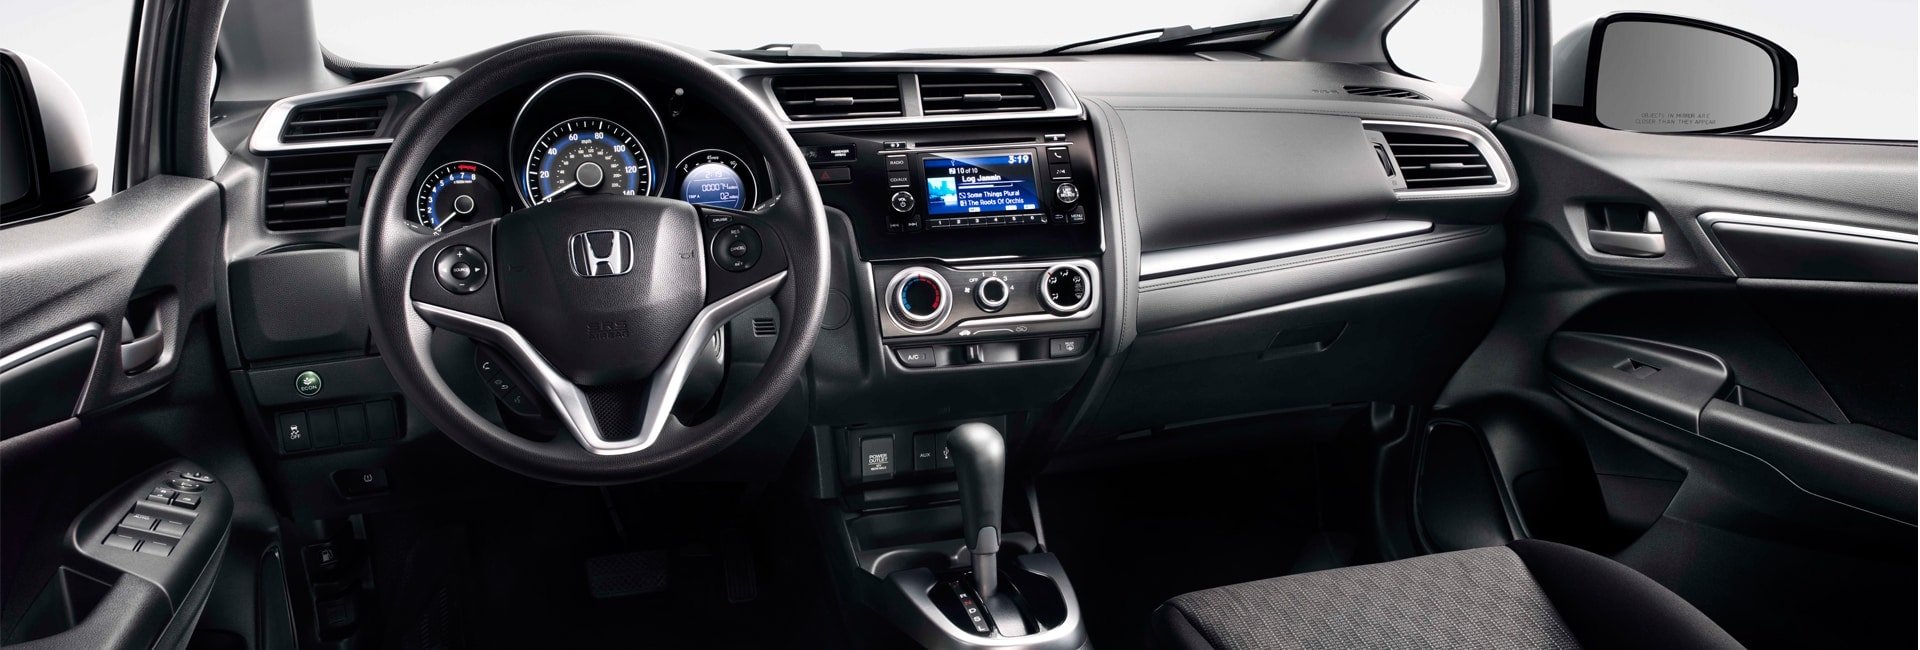 New 2020 Honda Fit Interior